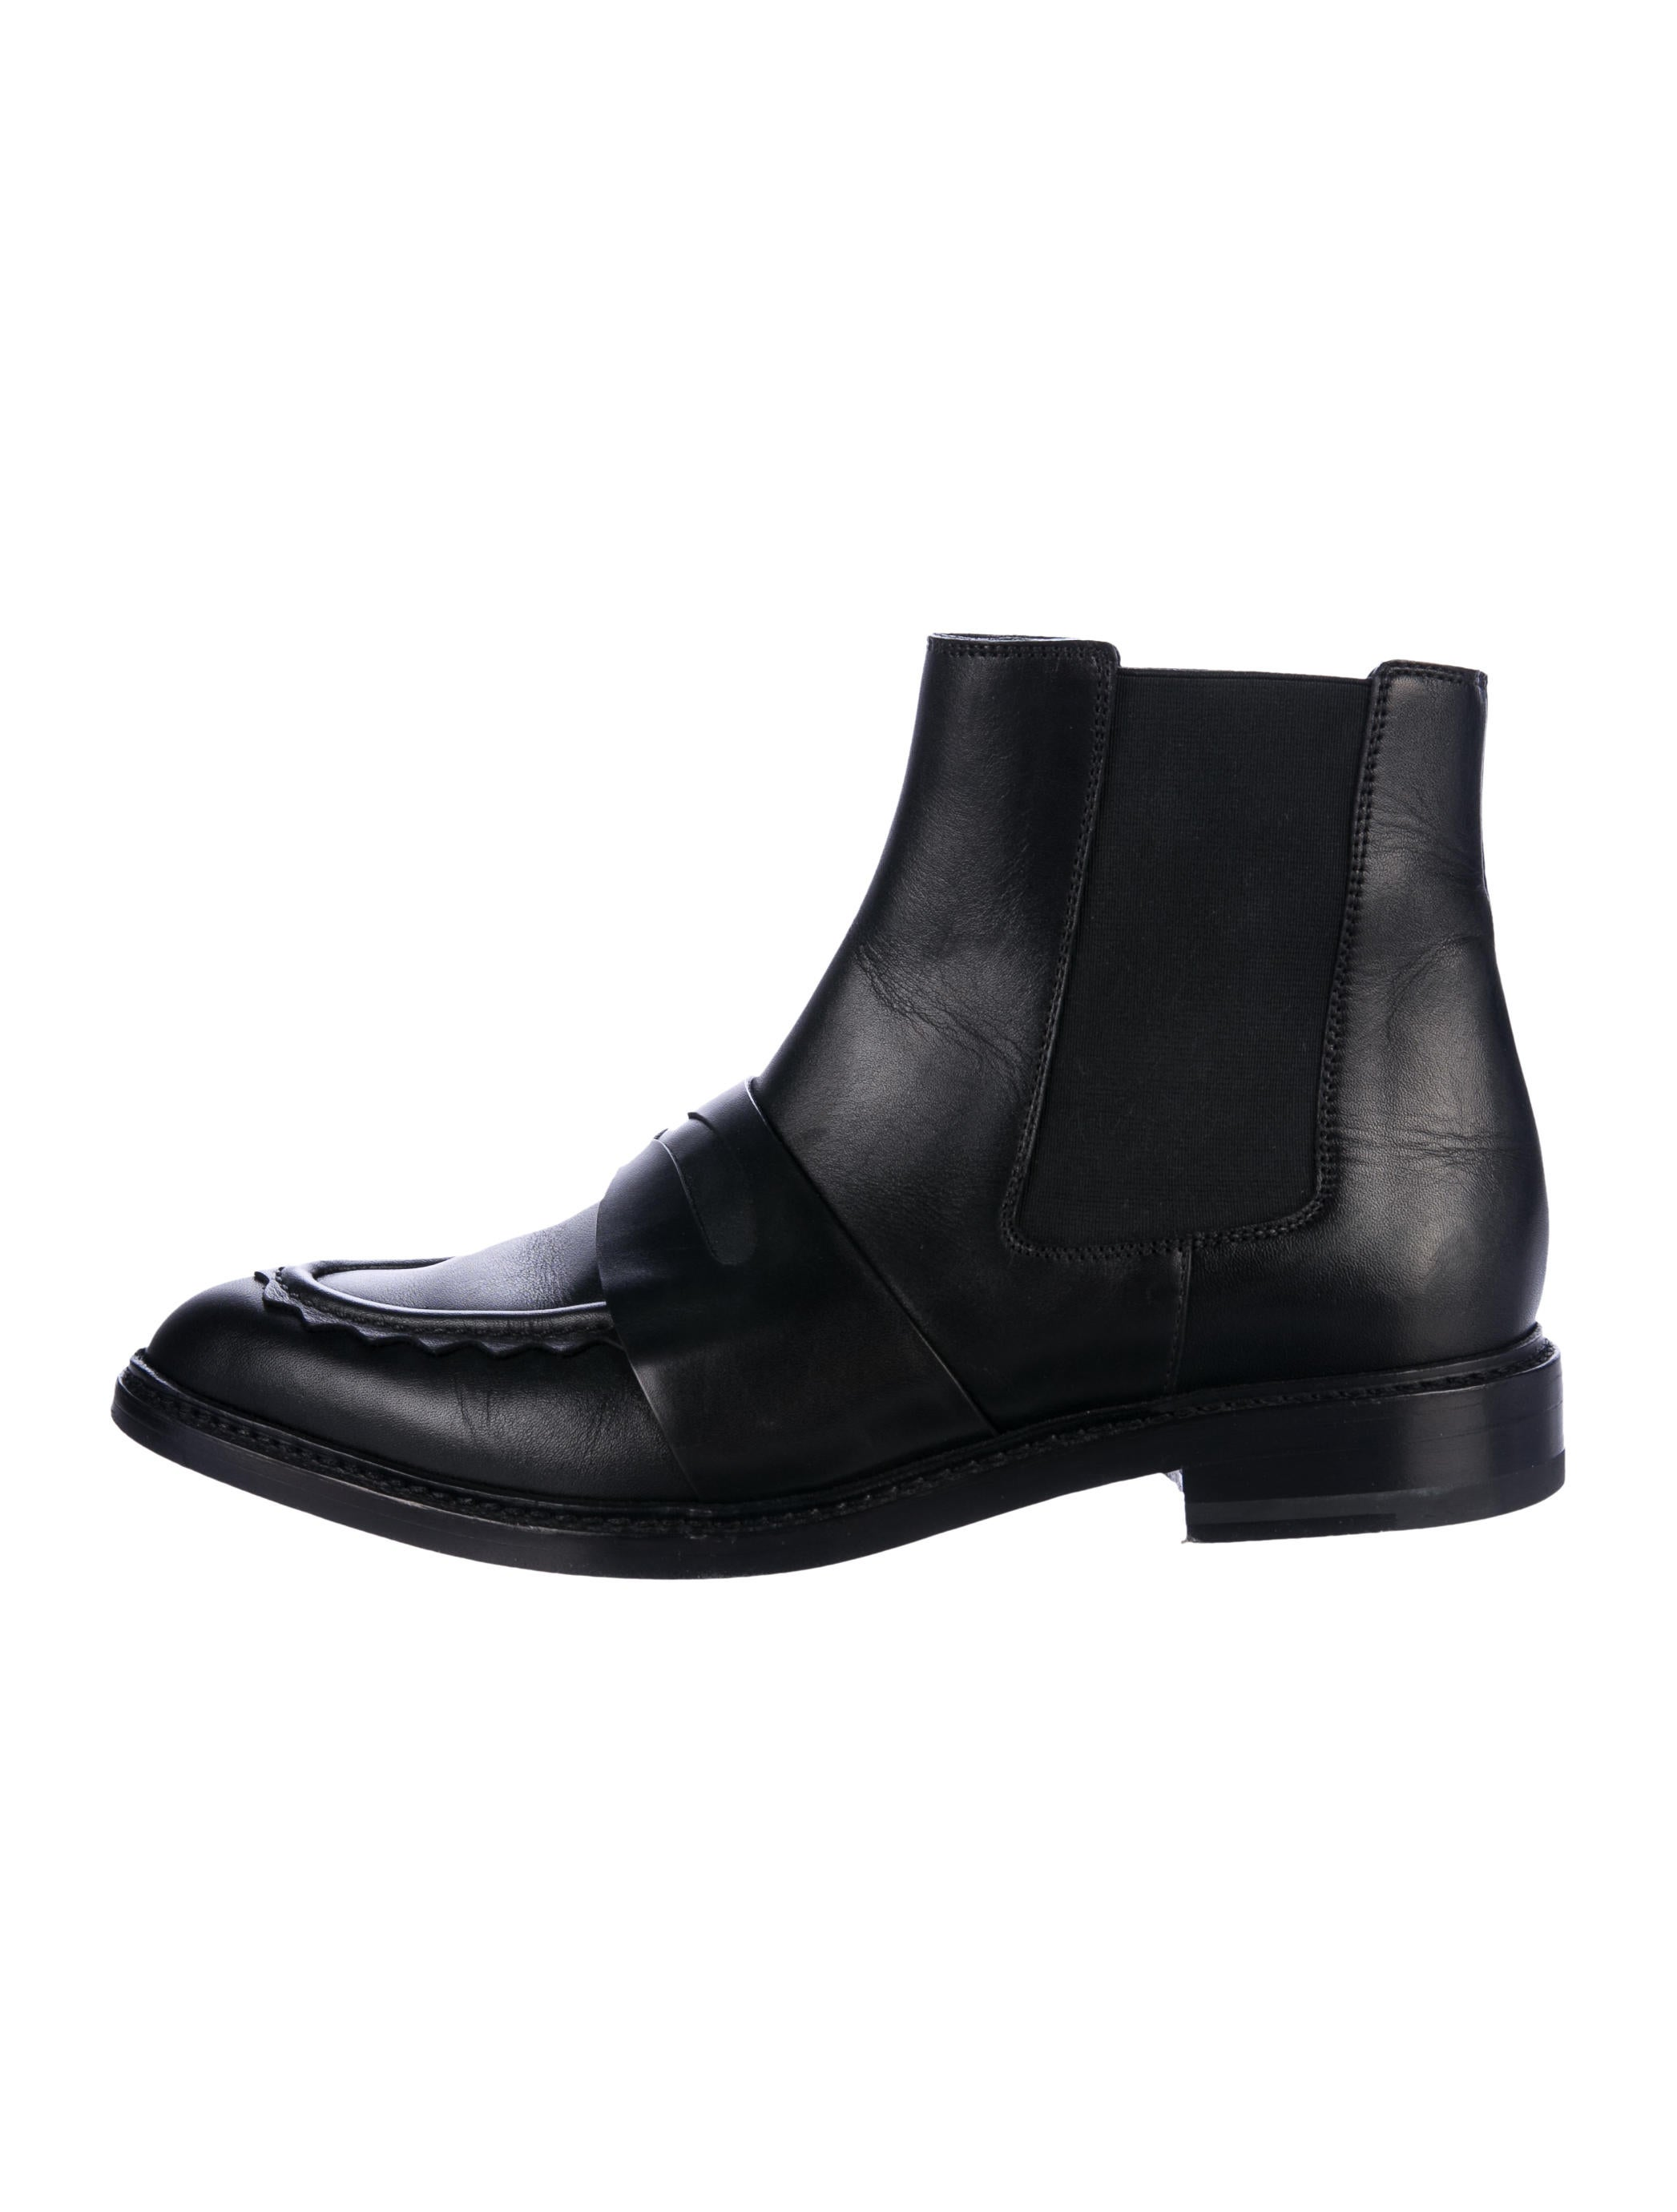 Christopher Kane Leather Semi Pointed-Toe Boots sale amazon clearance amazon cheap sale enjoy clearance genuine cheap sale amazing price LqwbCV